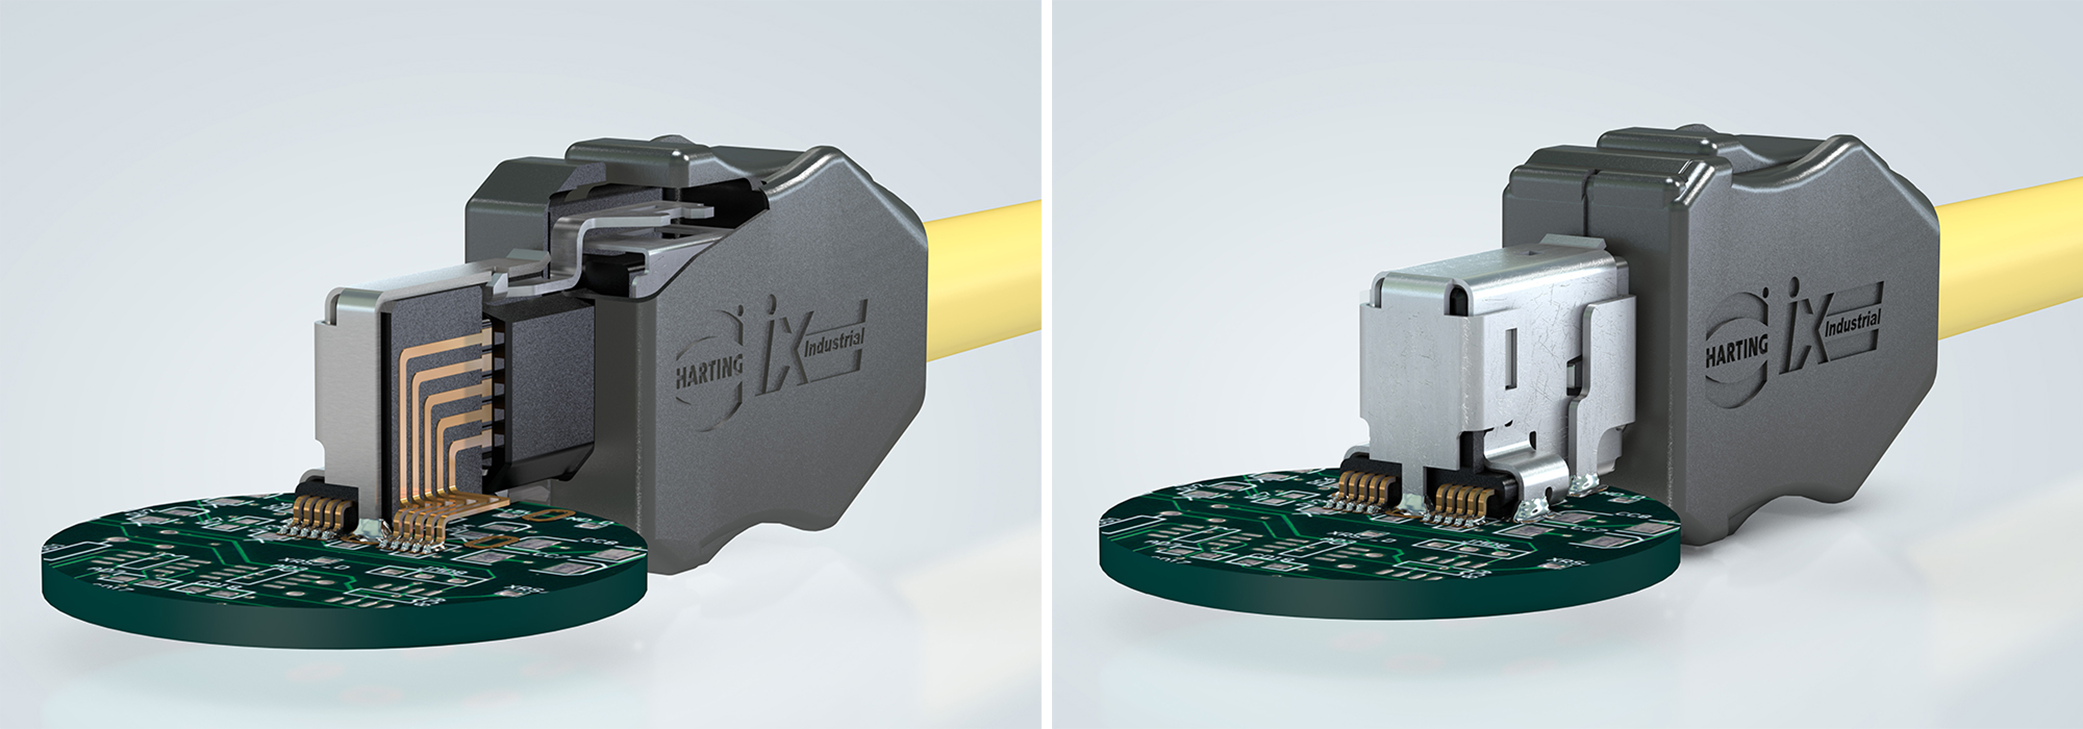 Small yet maximum robustness for harsh industrial applications